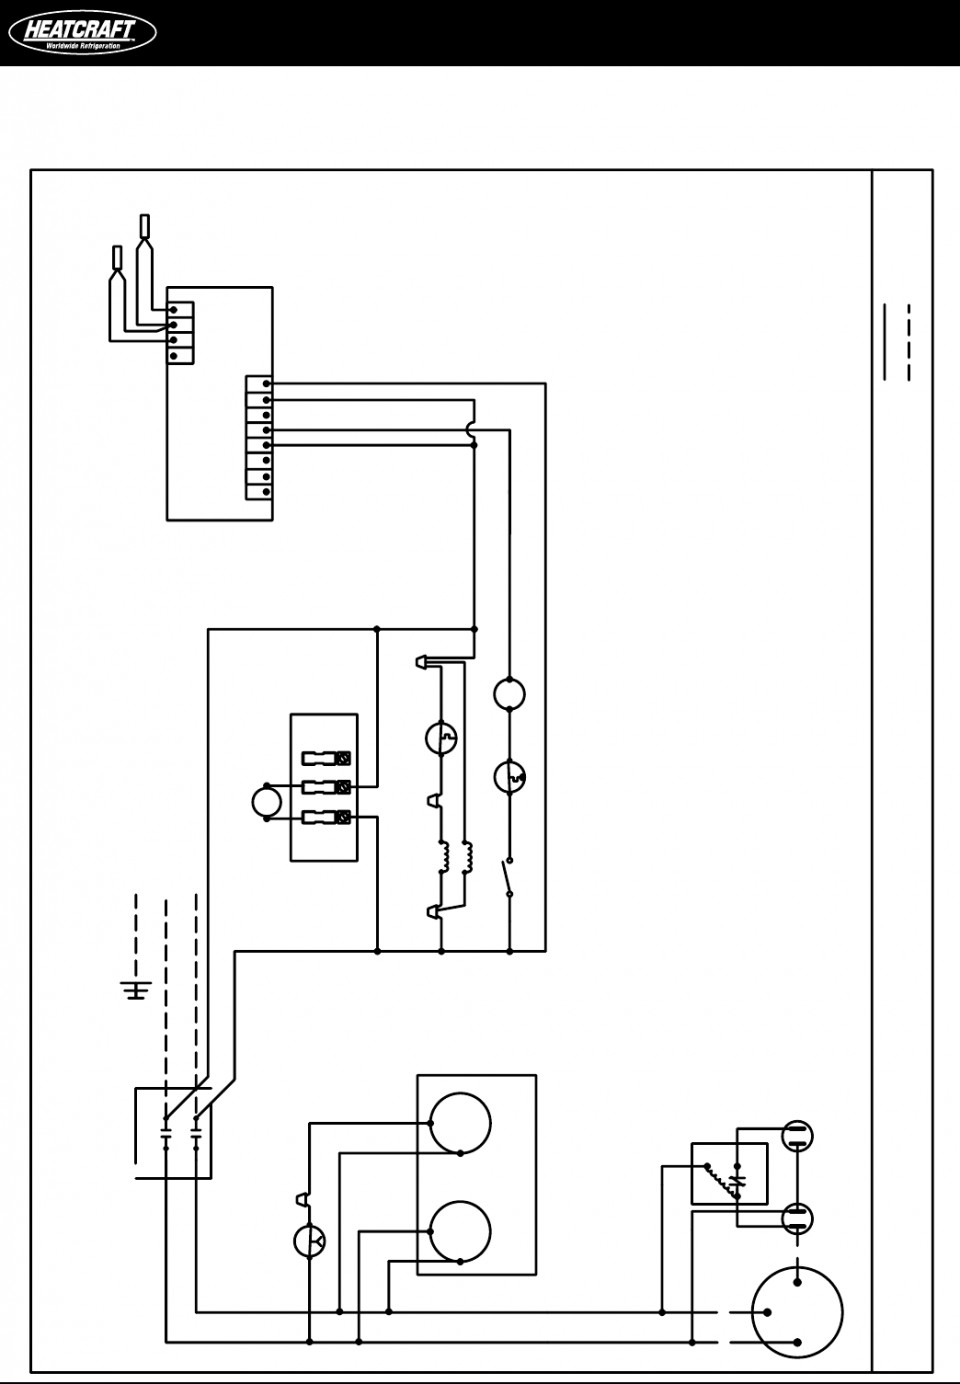 Refrigeration Solenoid Wiring Diagram Online Manuual Of Fisher Plow Relay Library Rh 55 Skriptoase De Ford